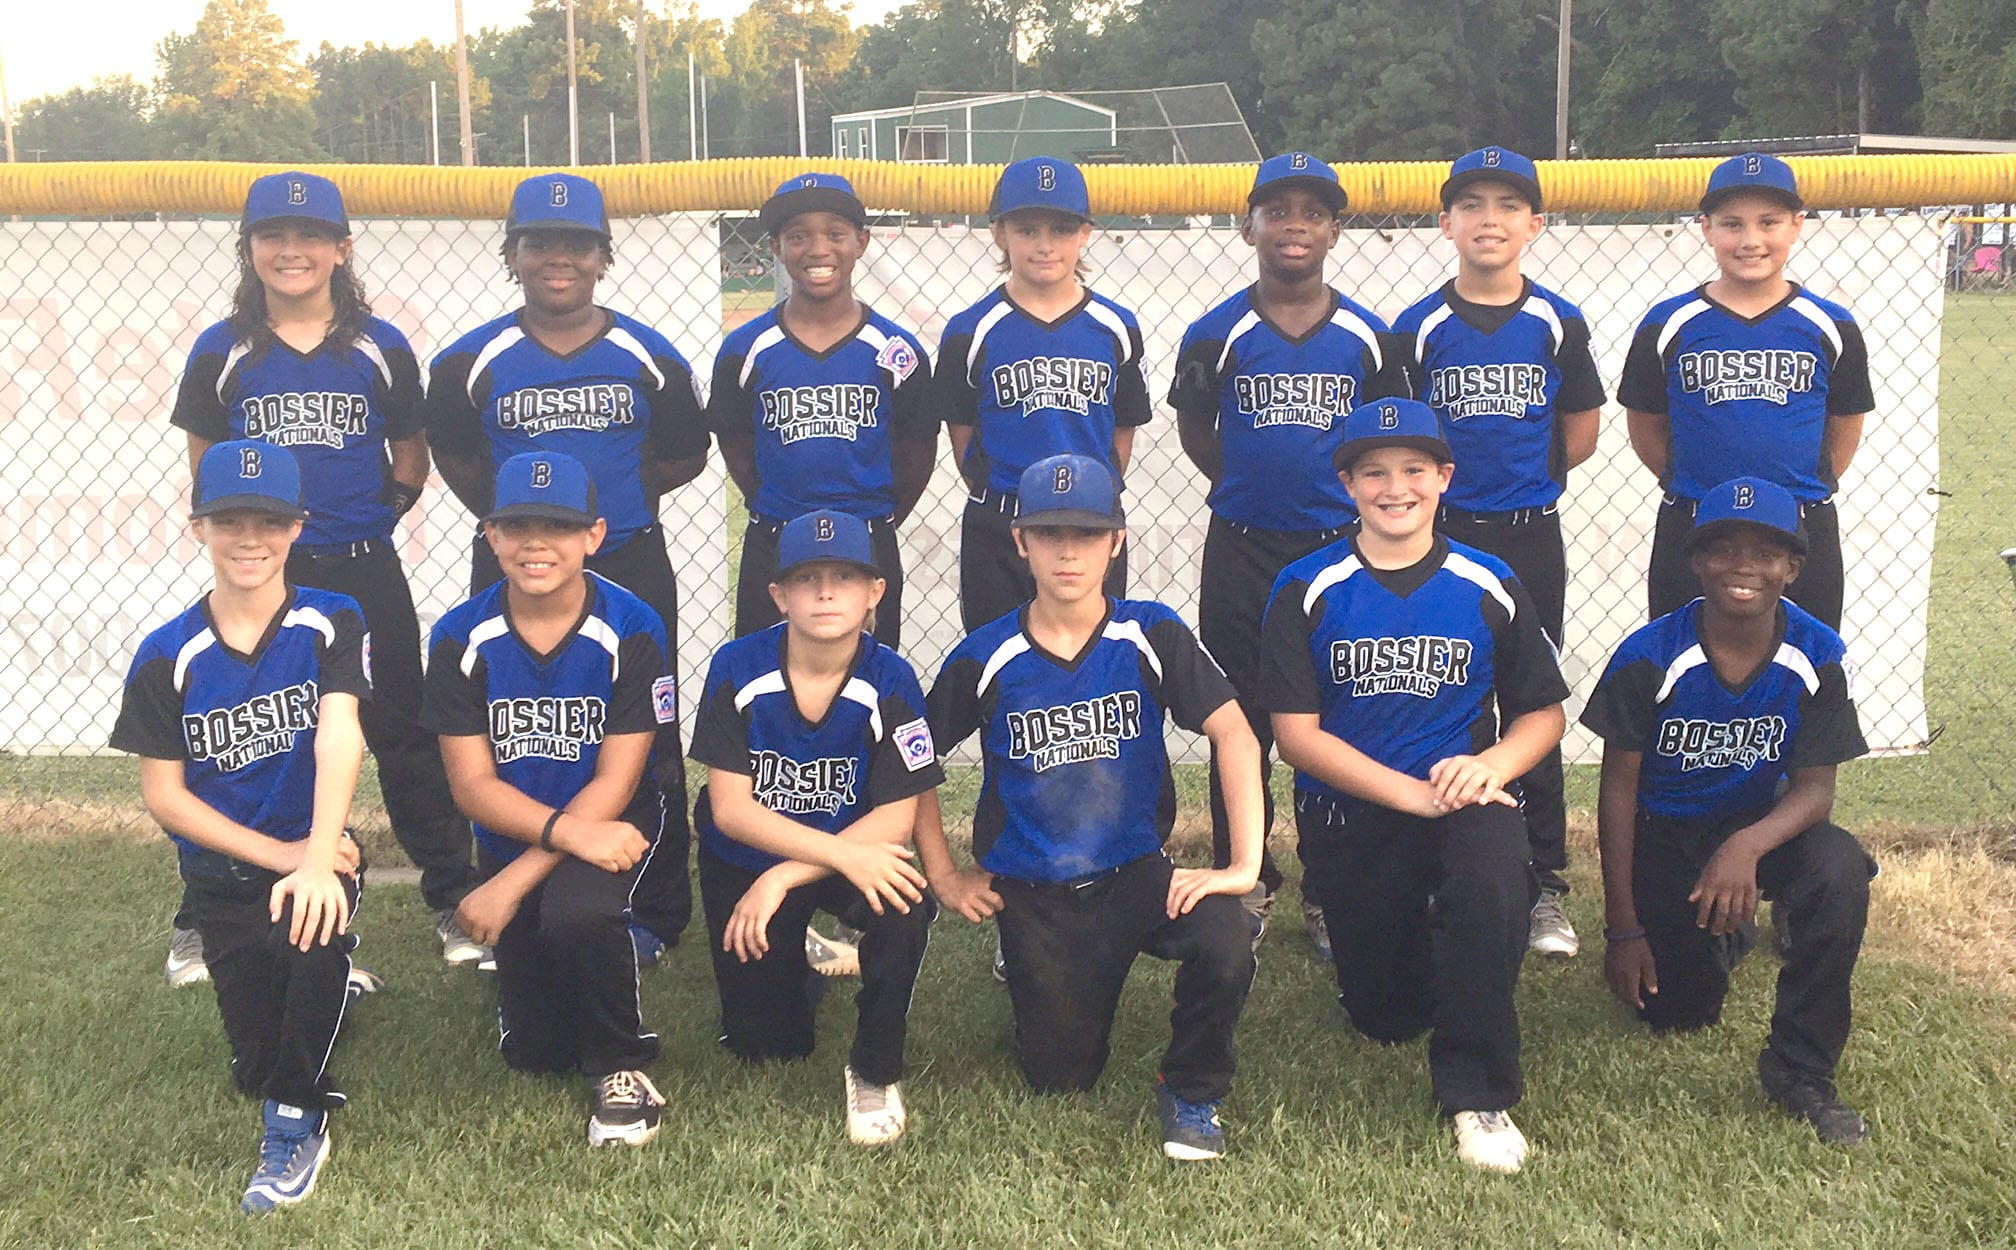 Courtesy Photo The Bossier All-Stars finished runner-up in the Little League 9/10 baseball state tournament in Blanchard.